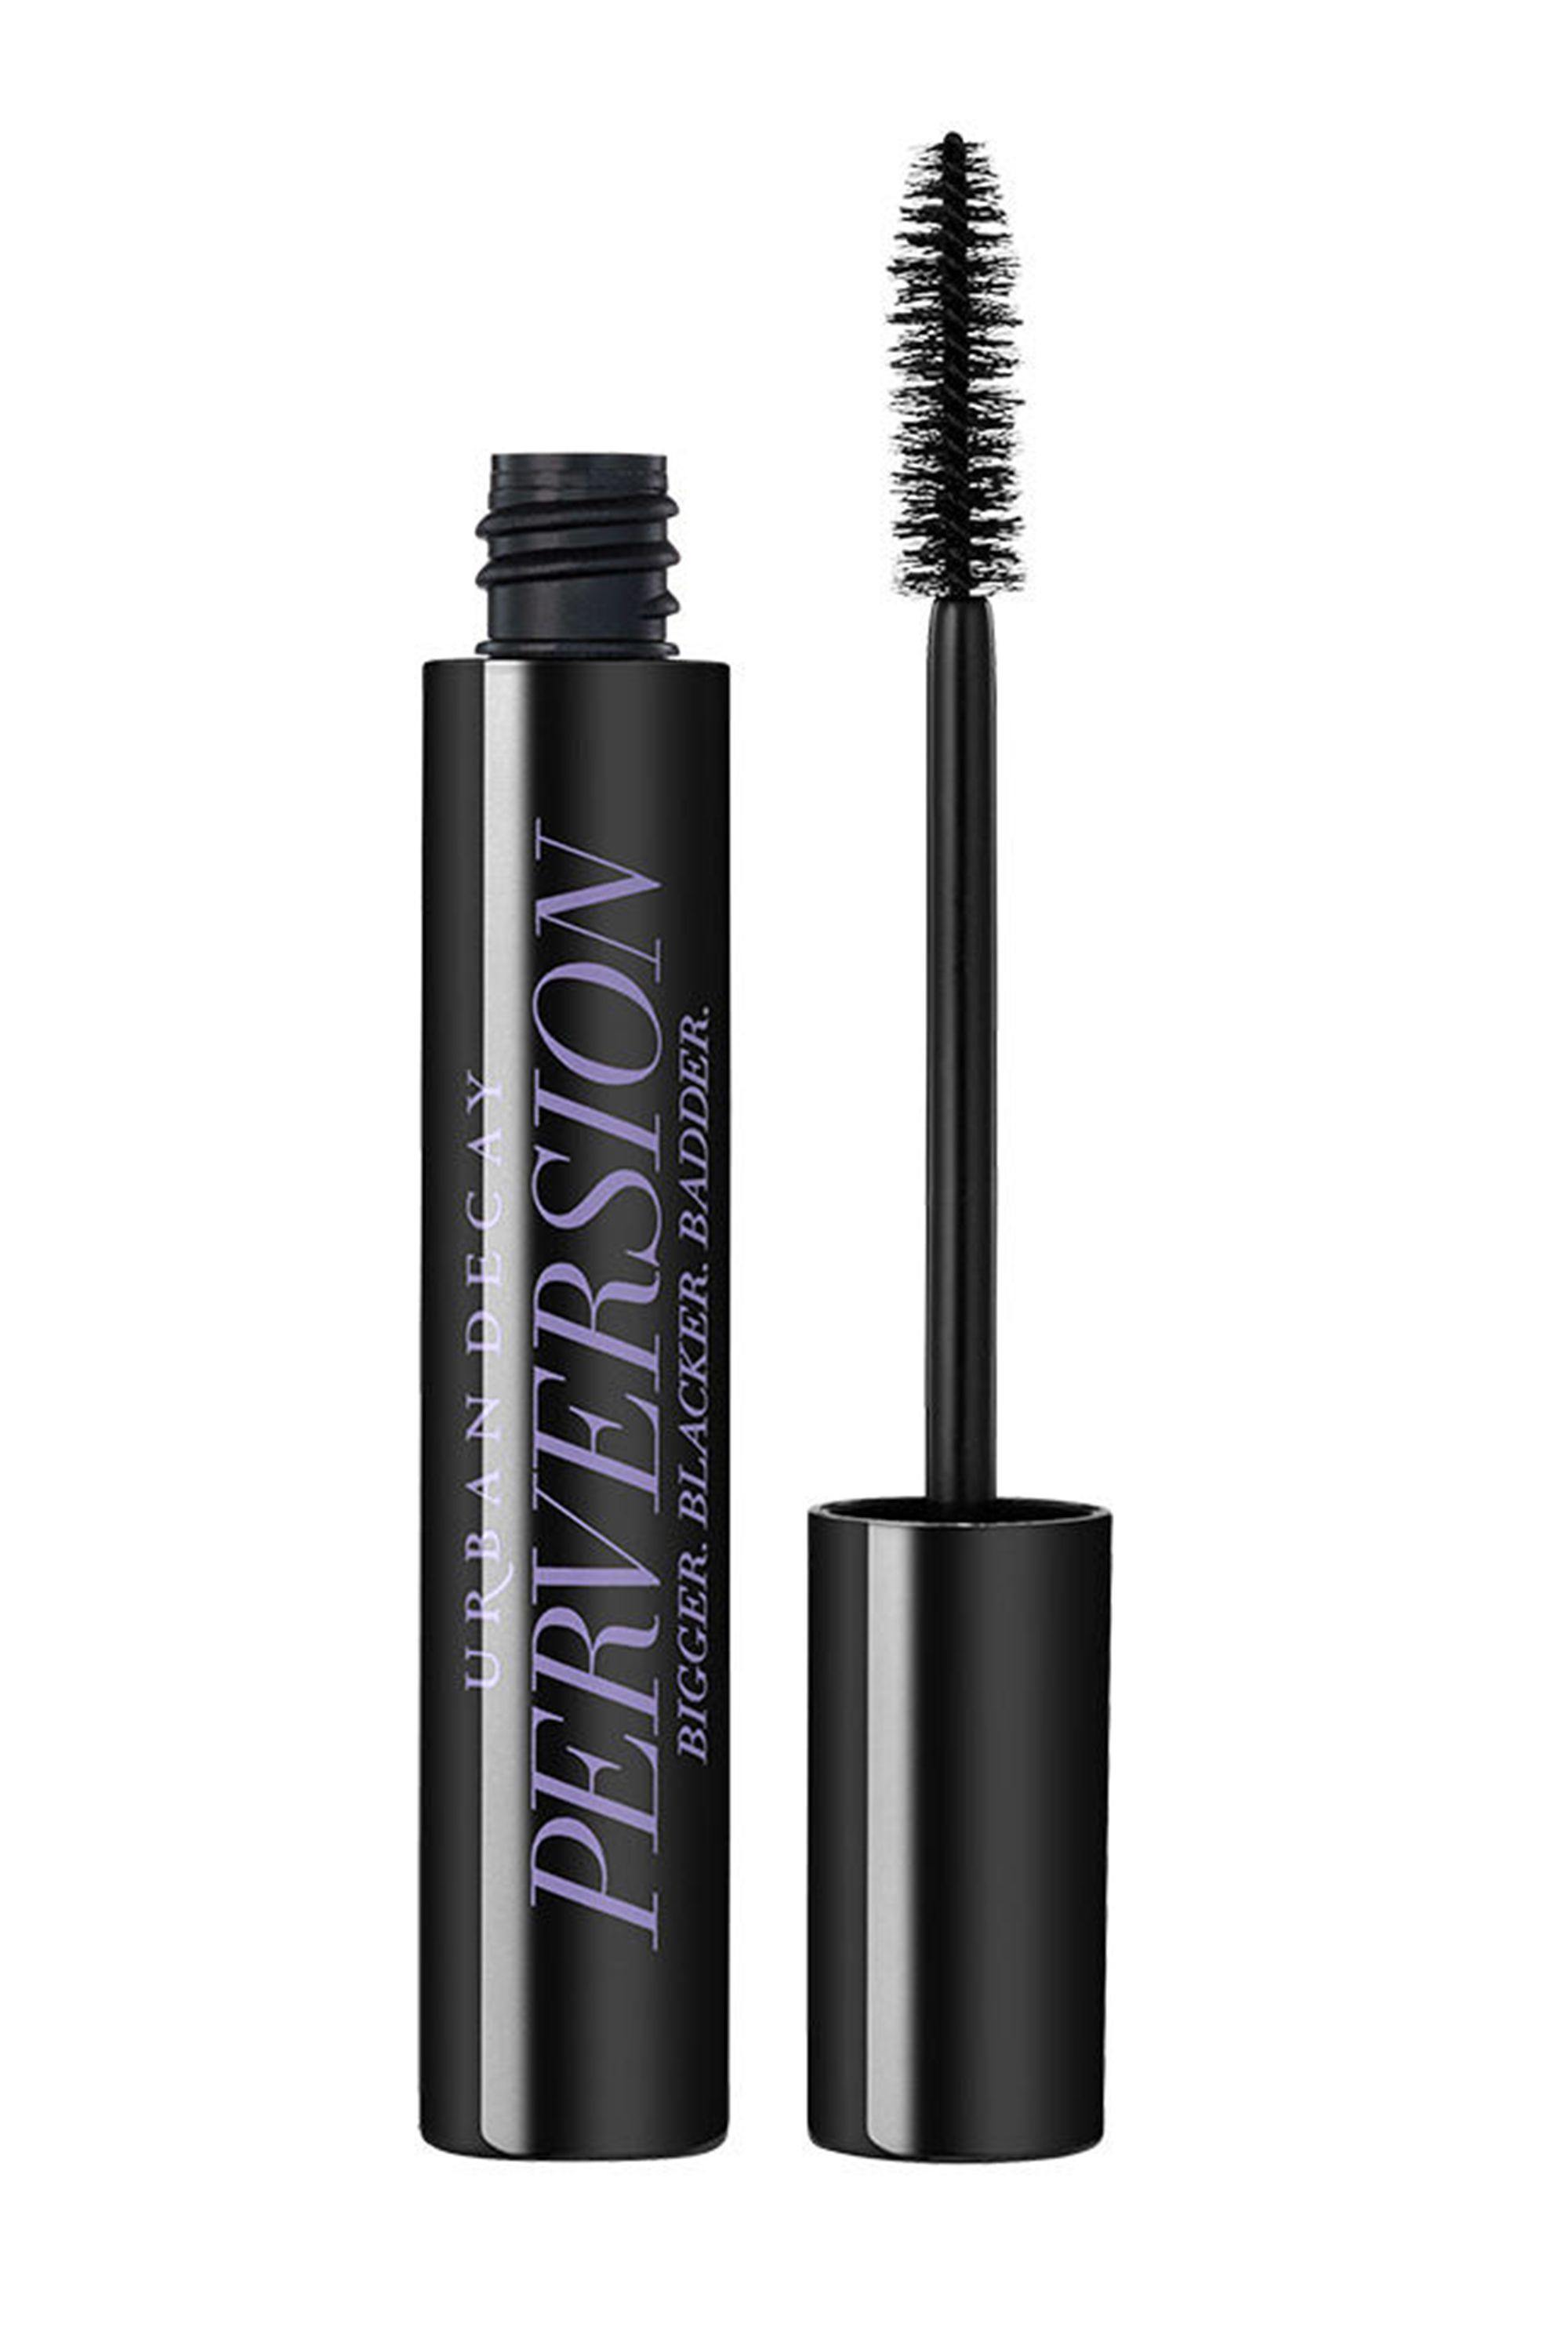 10 Best Mascaras in 2018 - Top Mascara Reviews for Volume and Length